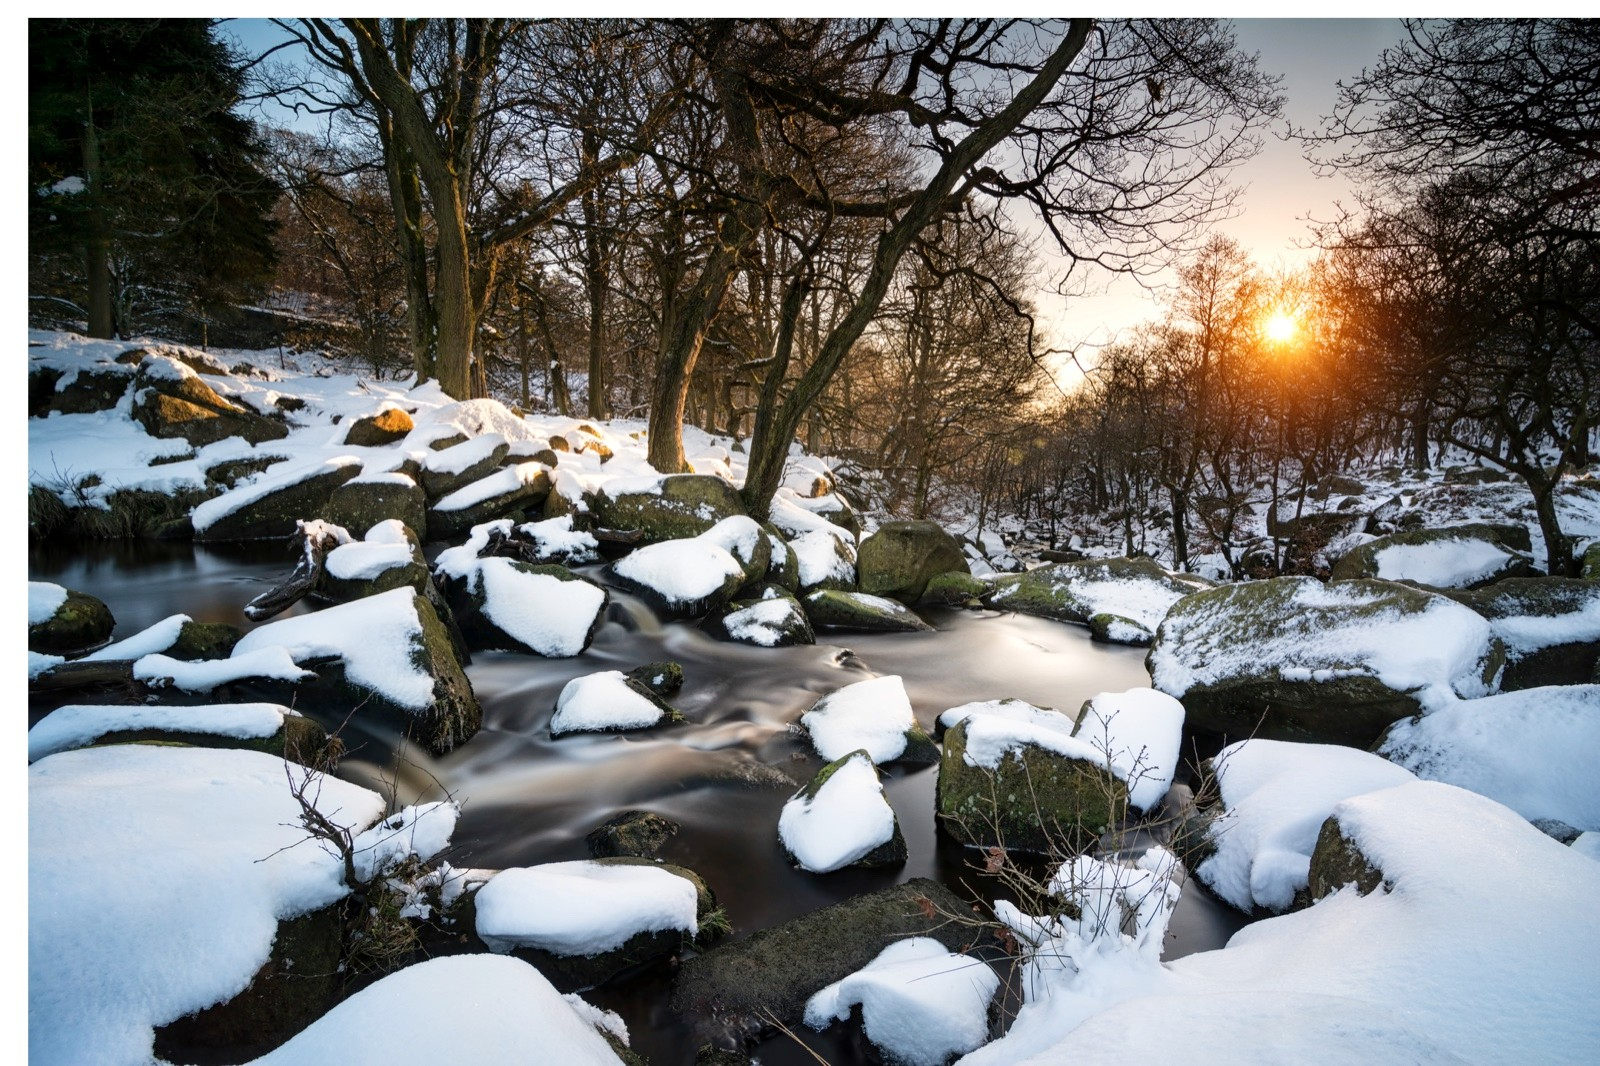 Padley-Gorge-in-snow-daf3956